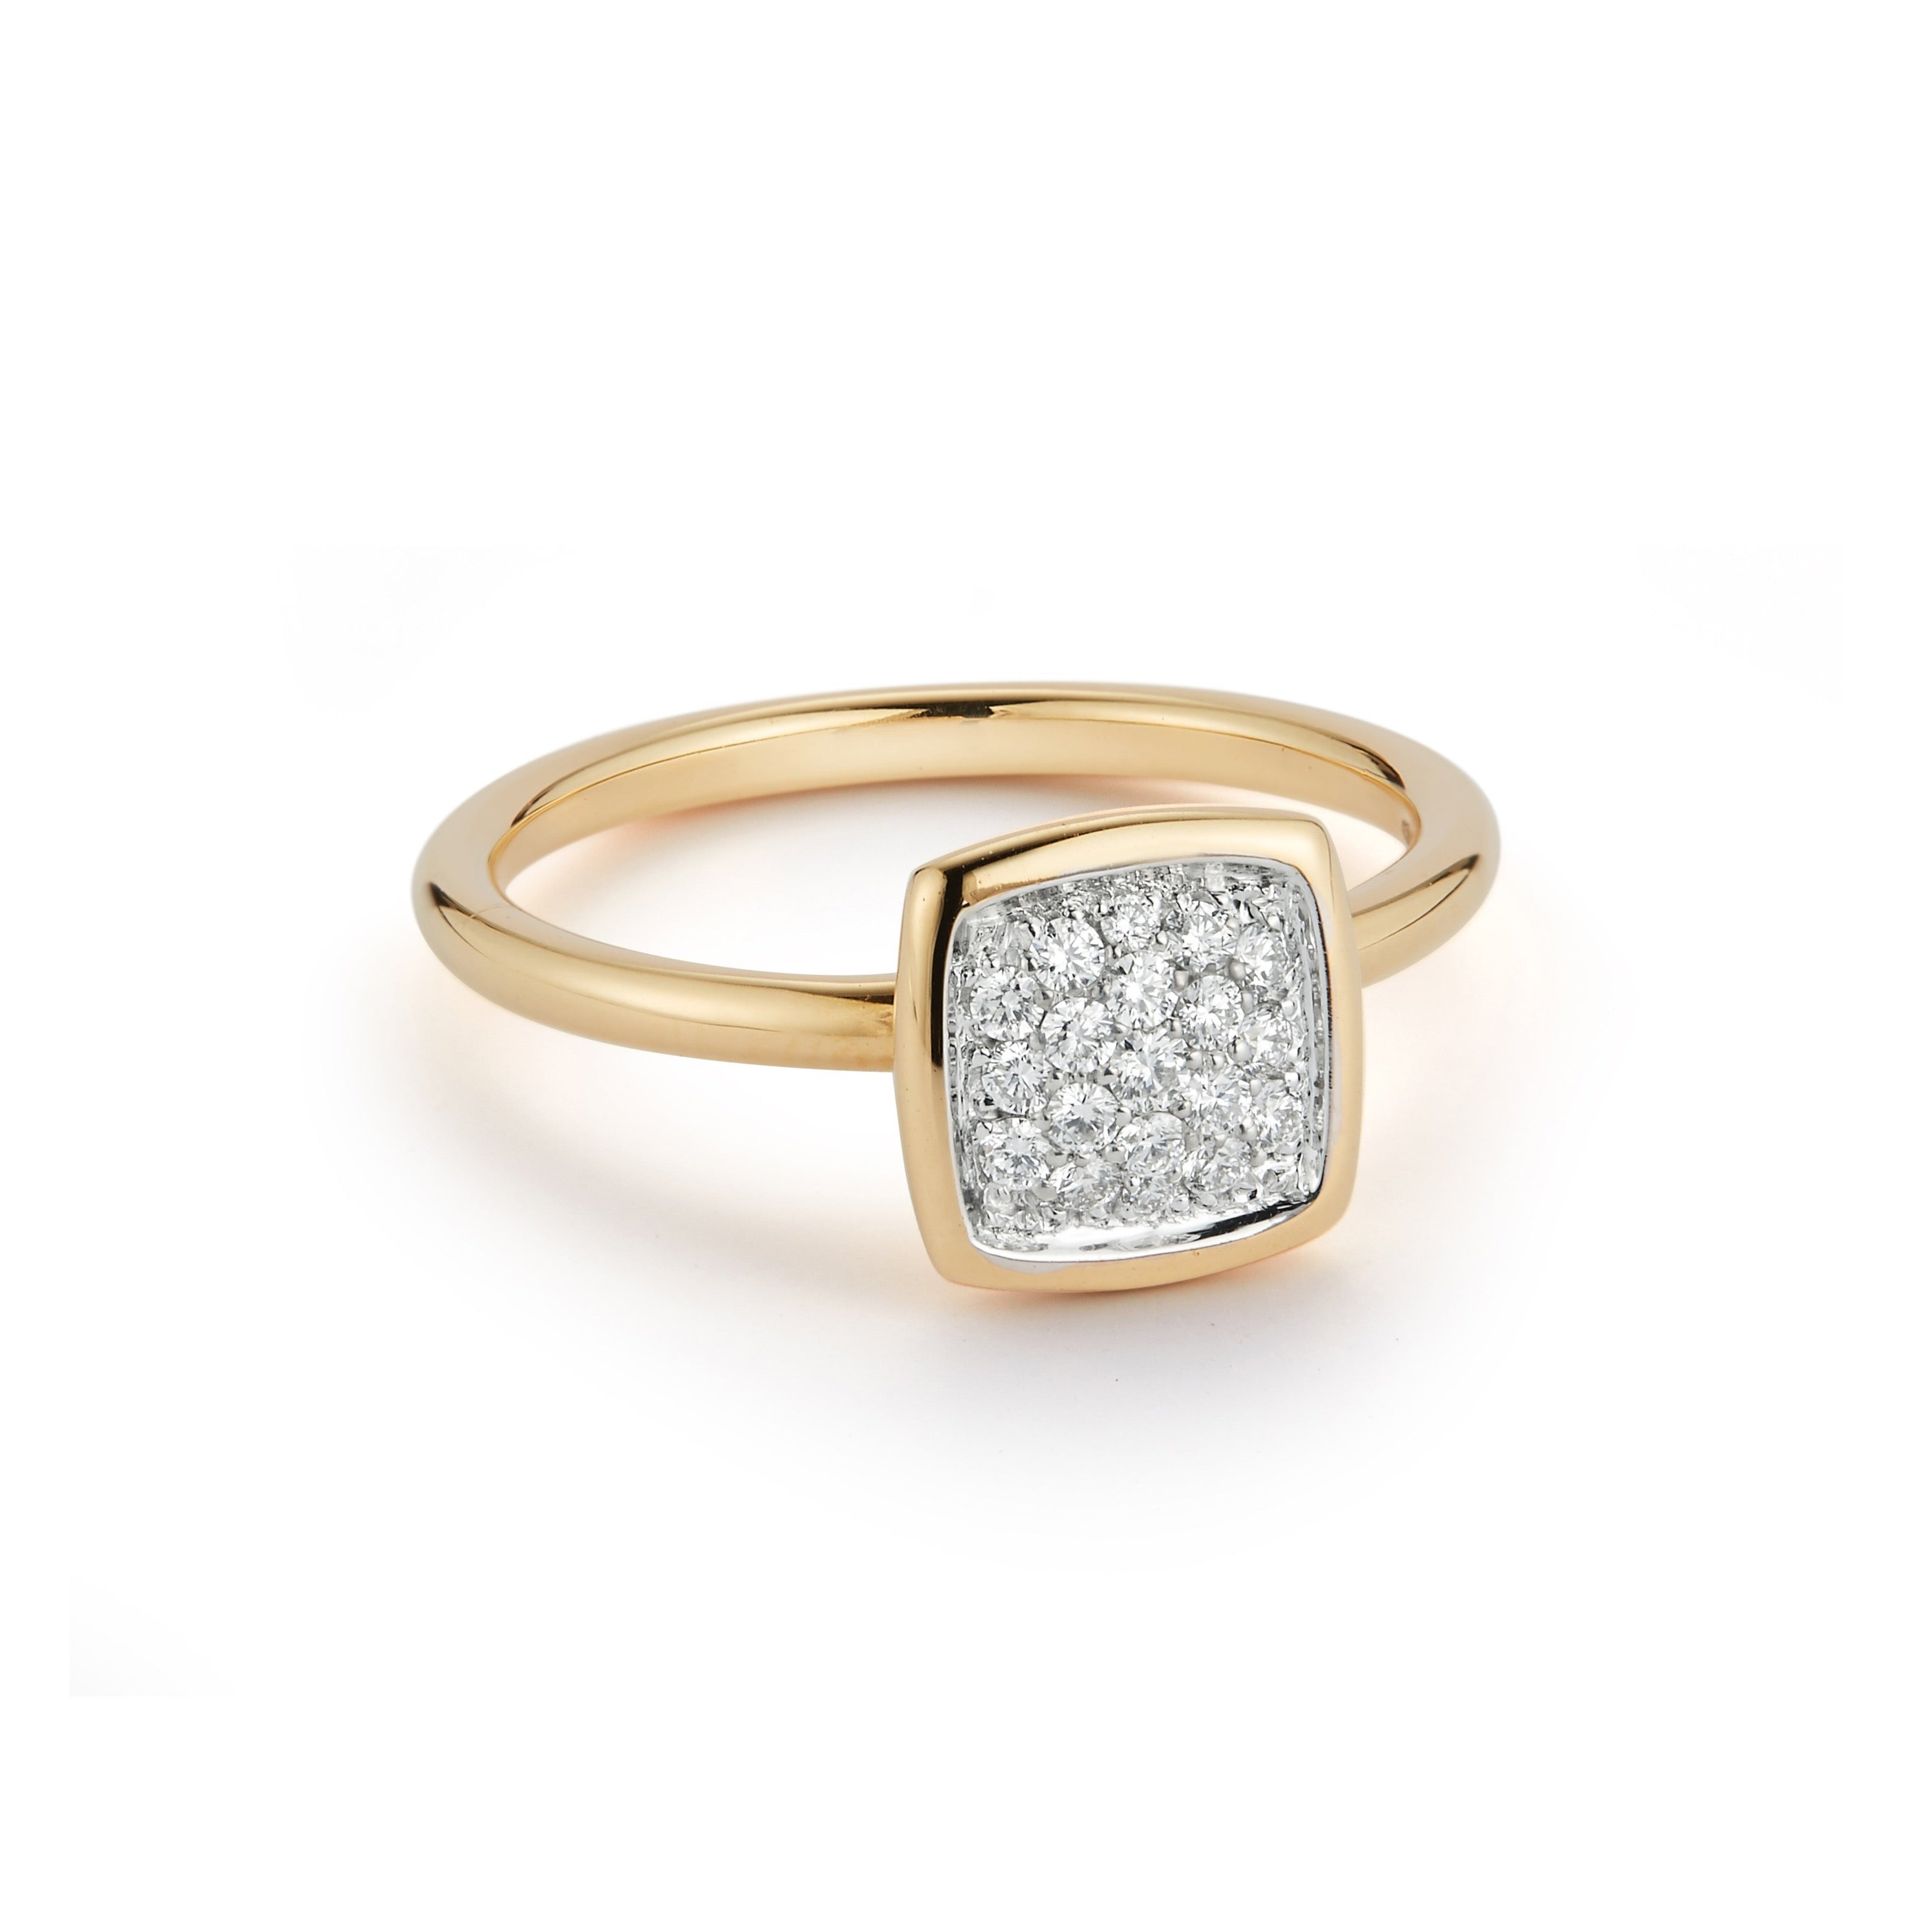 A & Furst - Gaia - XS Stackable Ring with Diamonds, 18k White and Yellow Gold